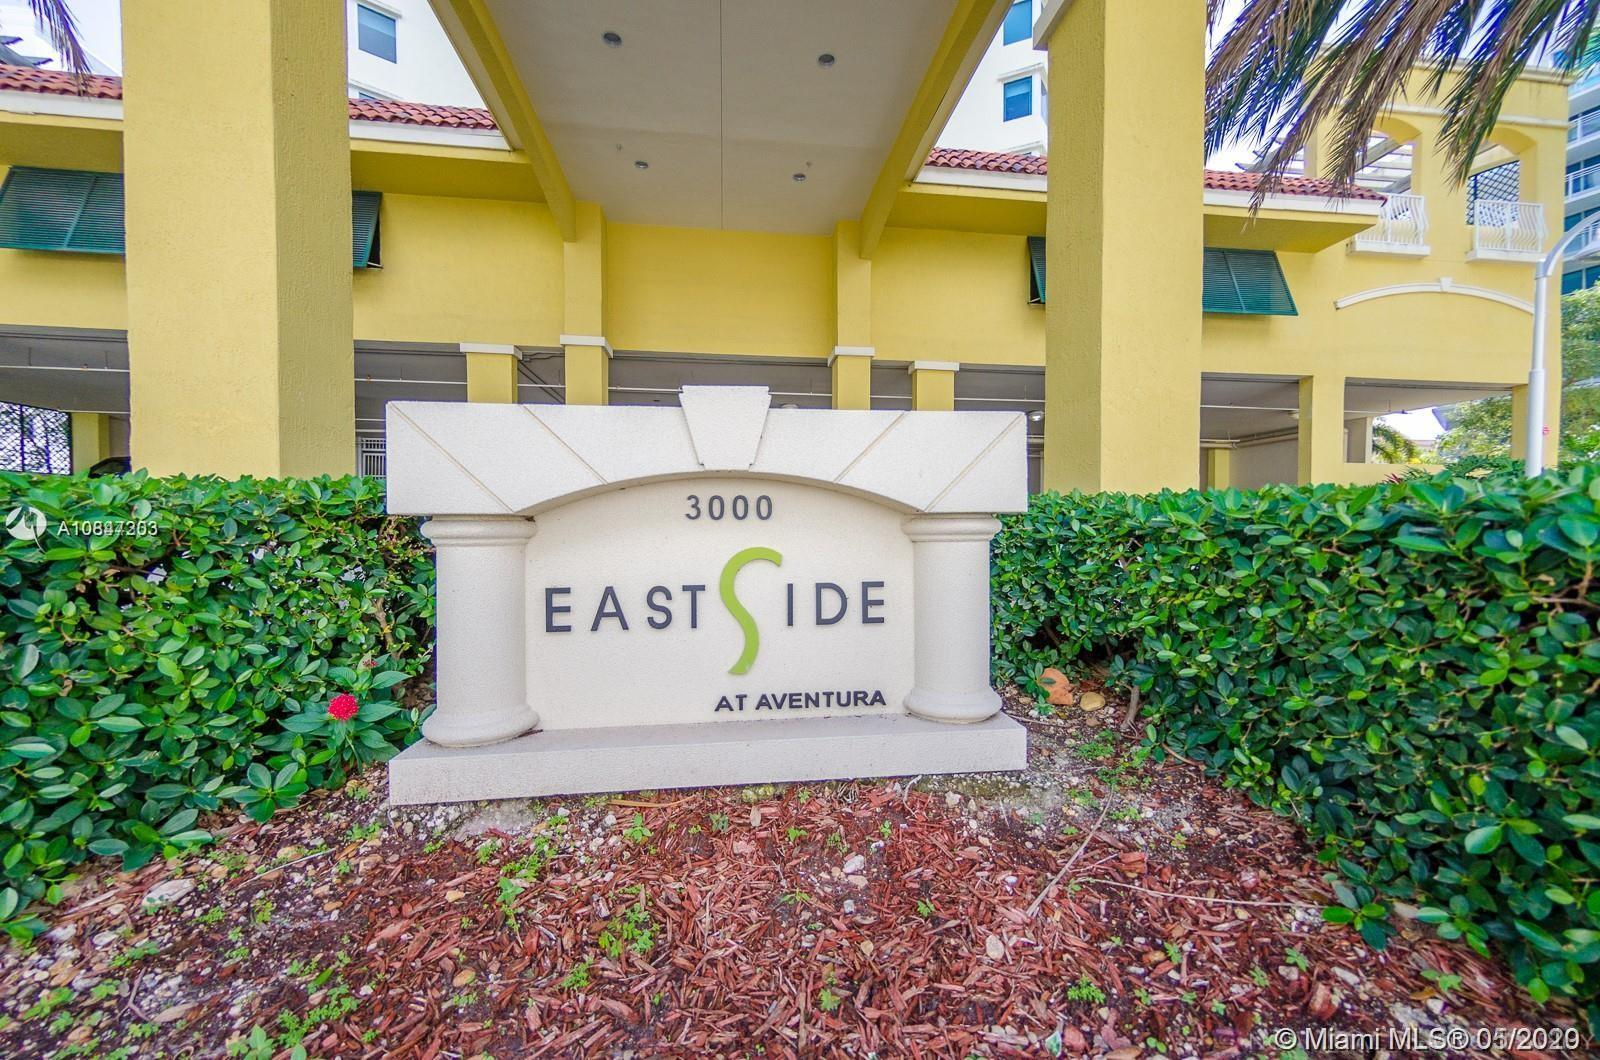 Nice apartment in the heart of Aventura. Close to excellent schools, performance center, shopping an